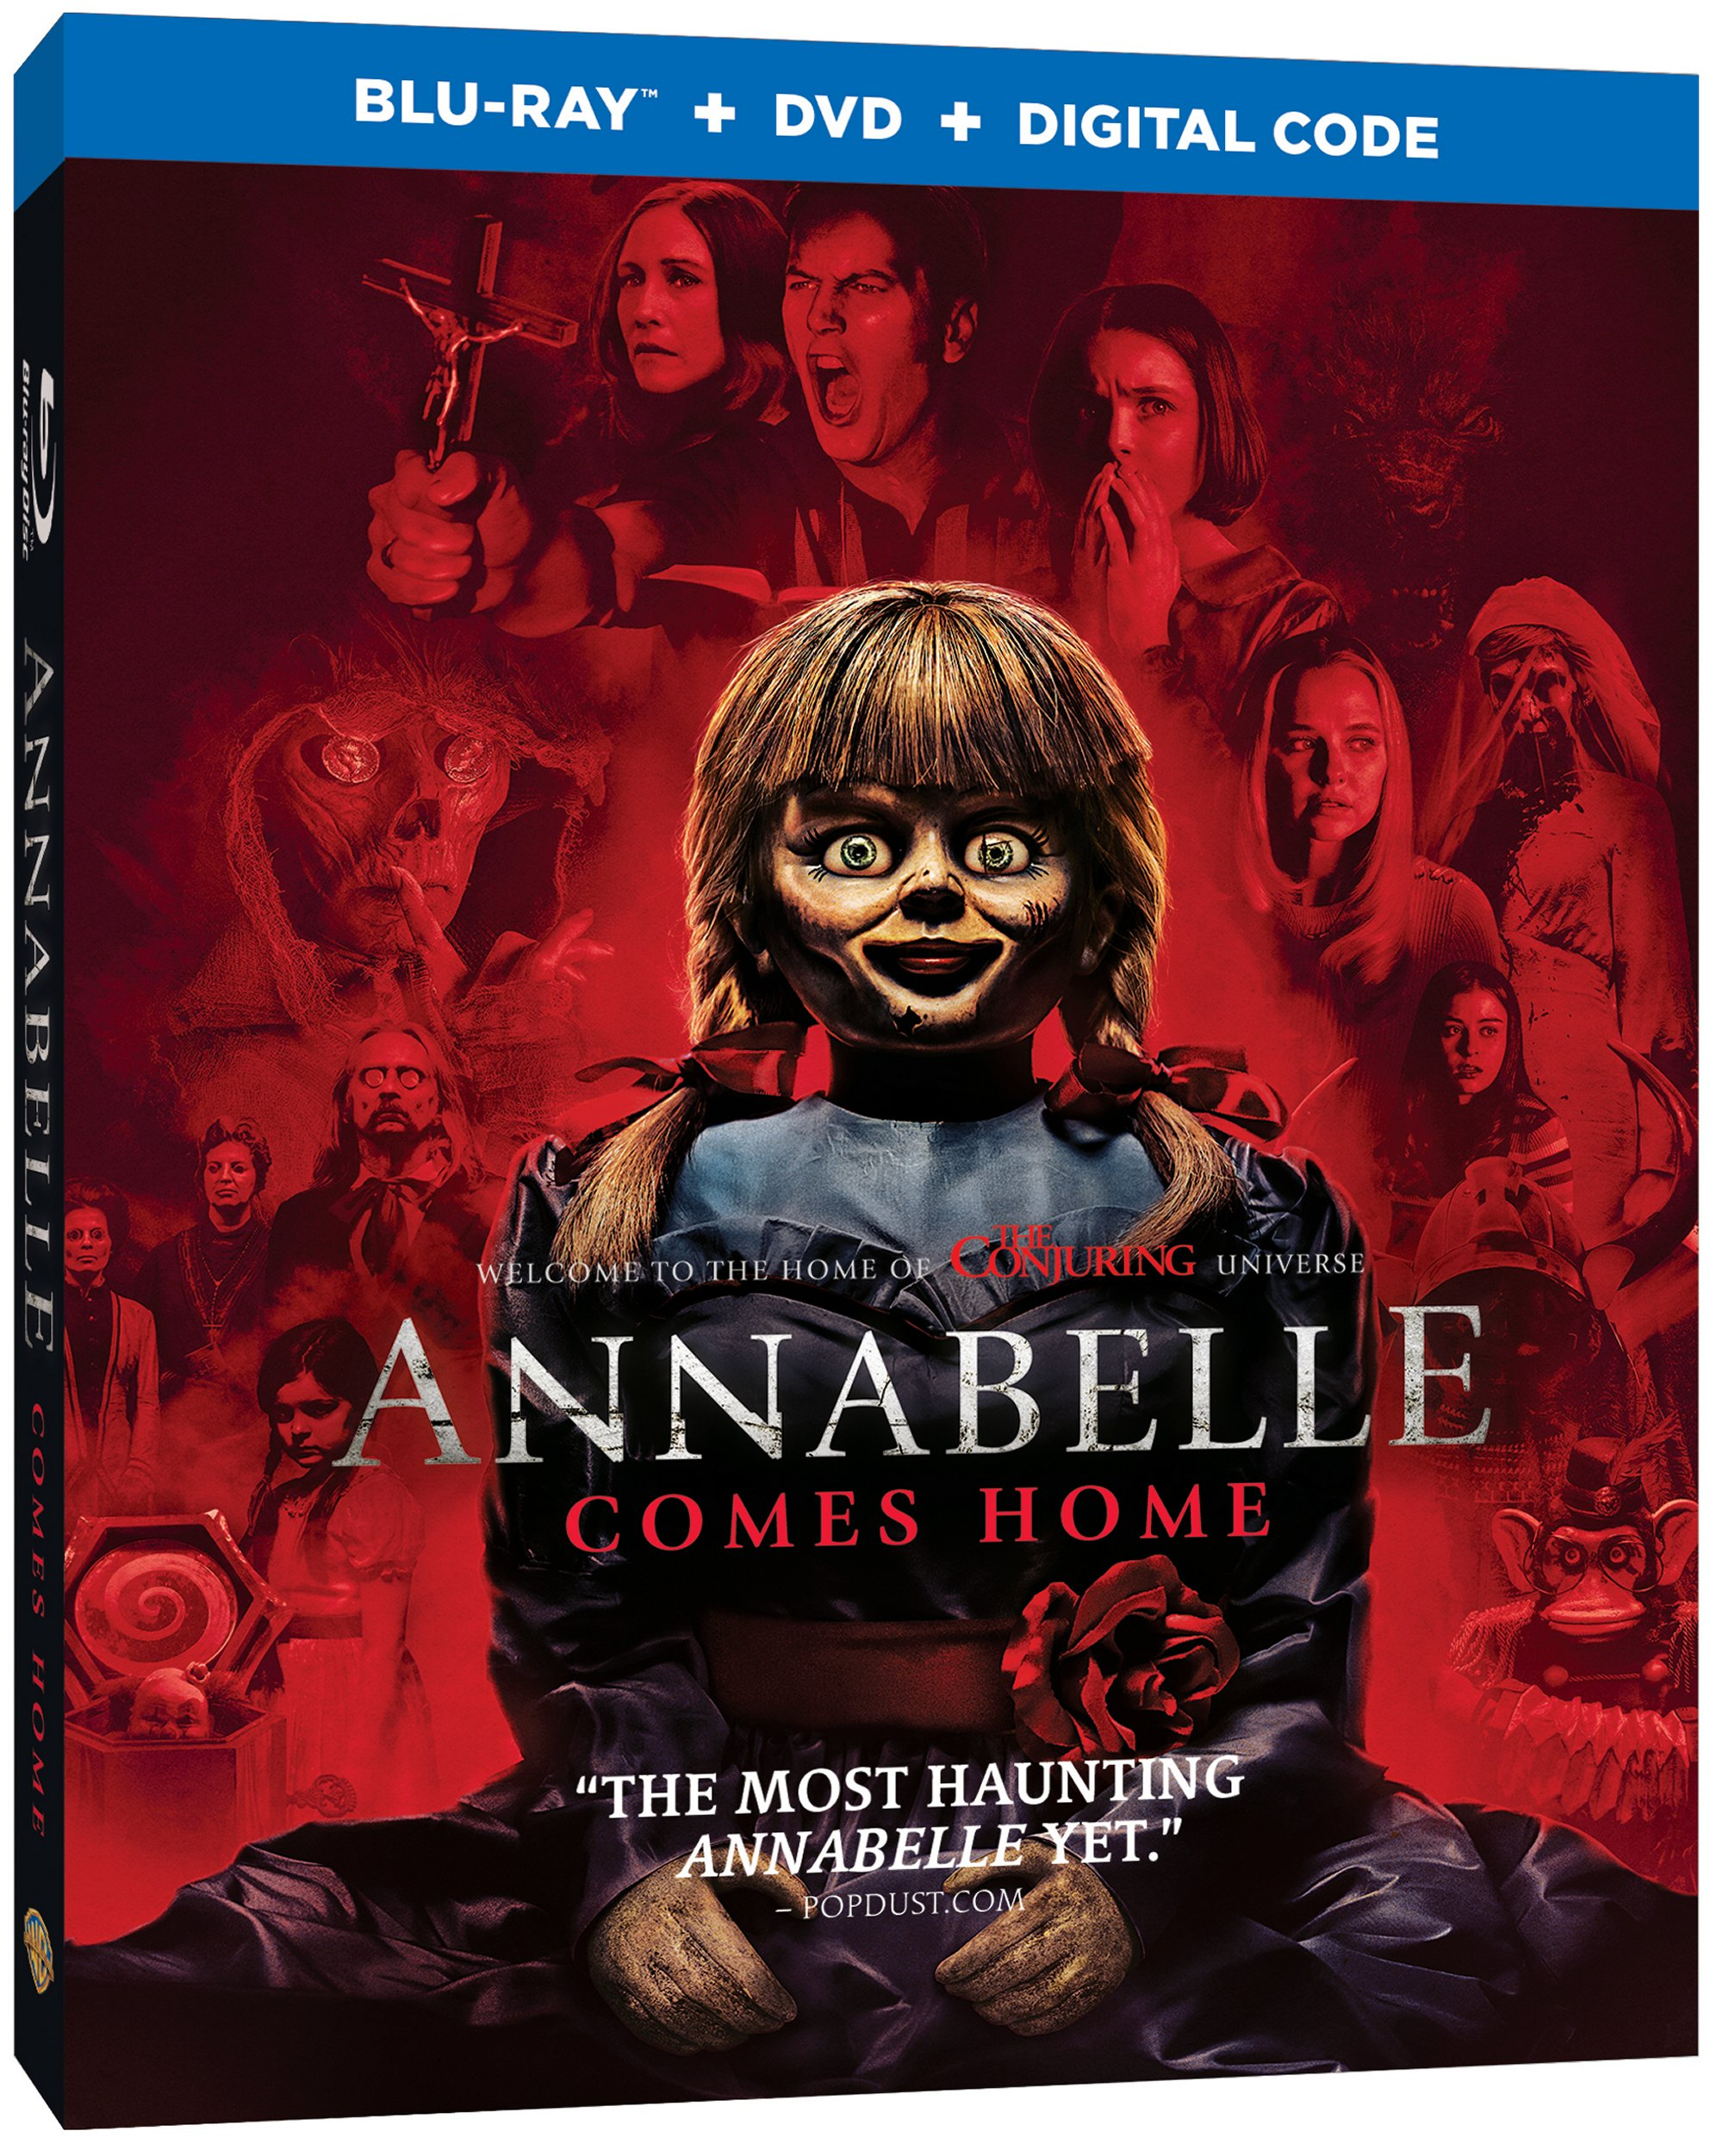 Annabelle Comes Home Blu Ray cover